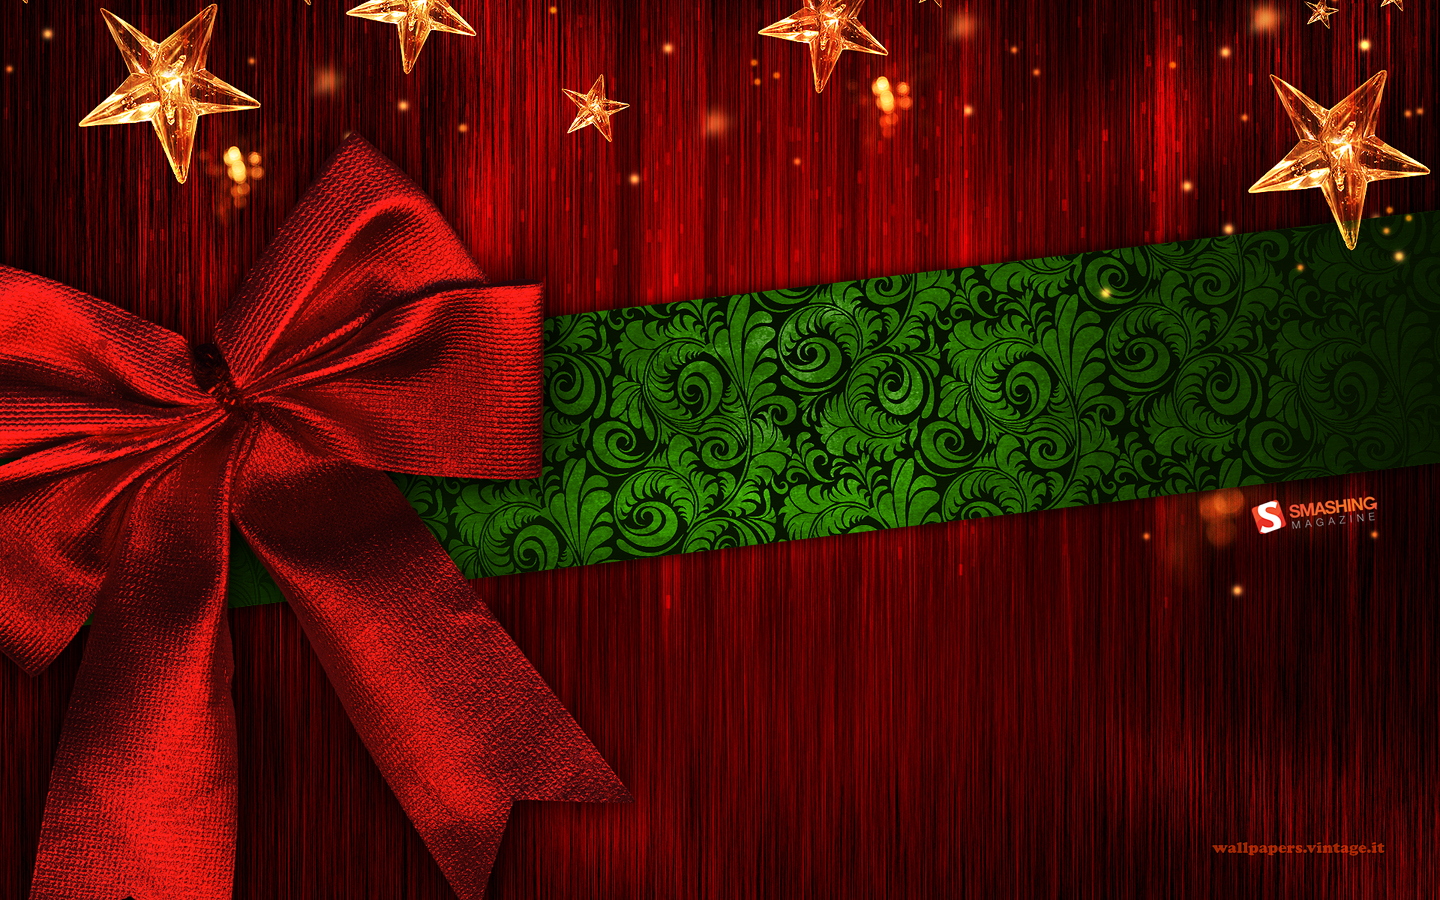 Stars and stripes - Christmas wallpaper - Free Desktop HD iPad ...